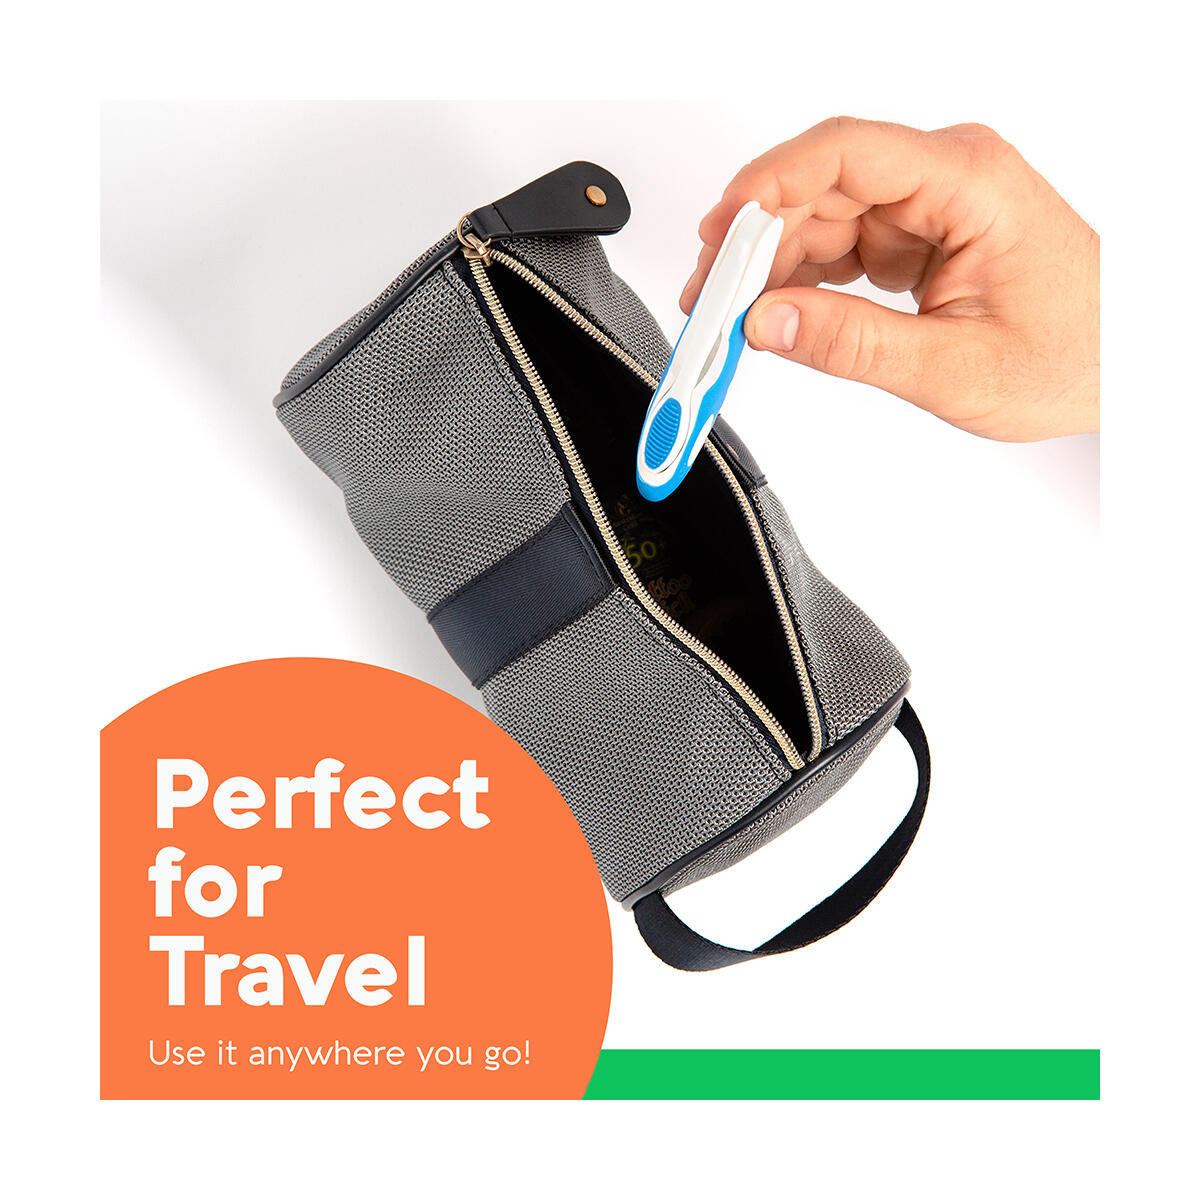 Folding Travel Toothbrush (3 Pack) | Portable & Compact Size with Antibacterial Bristles | Perfect for Camping, Hiking, Adults, Kids & More!